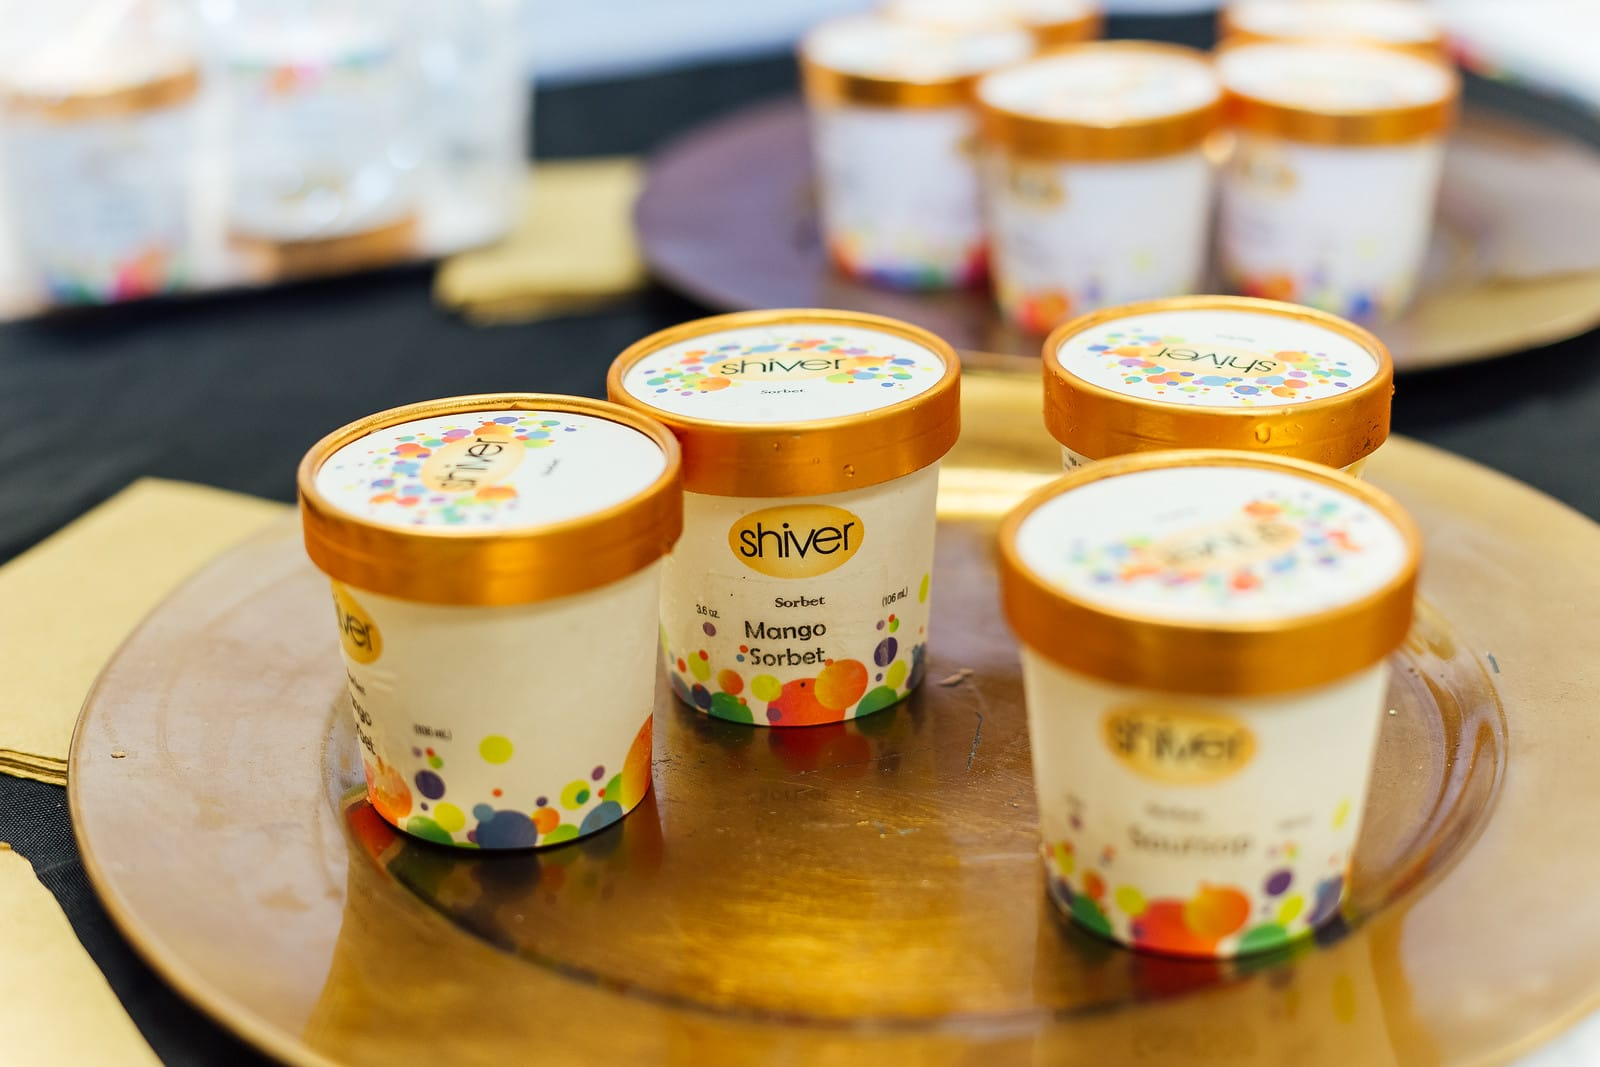 Sorbet company gets over $150,000 in funding